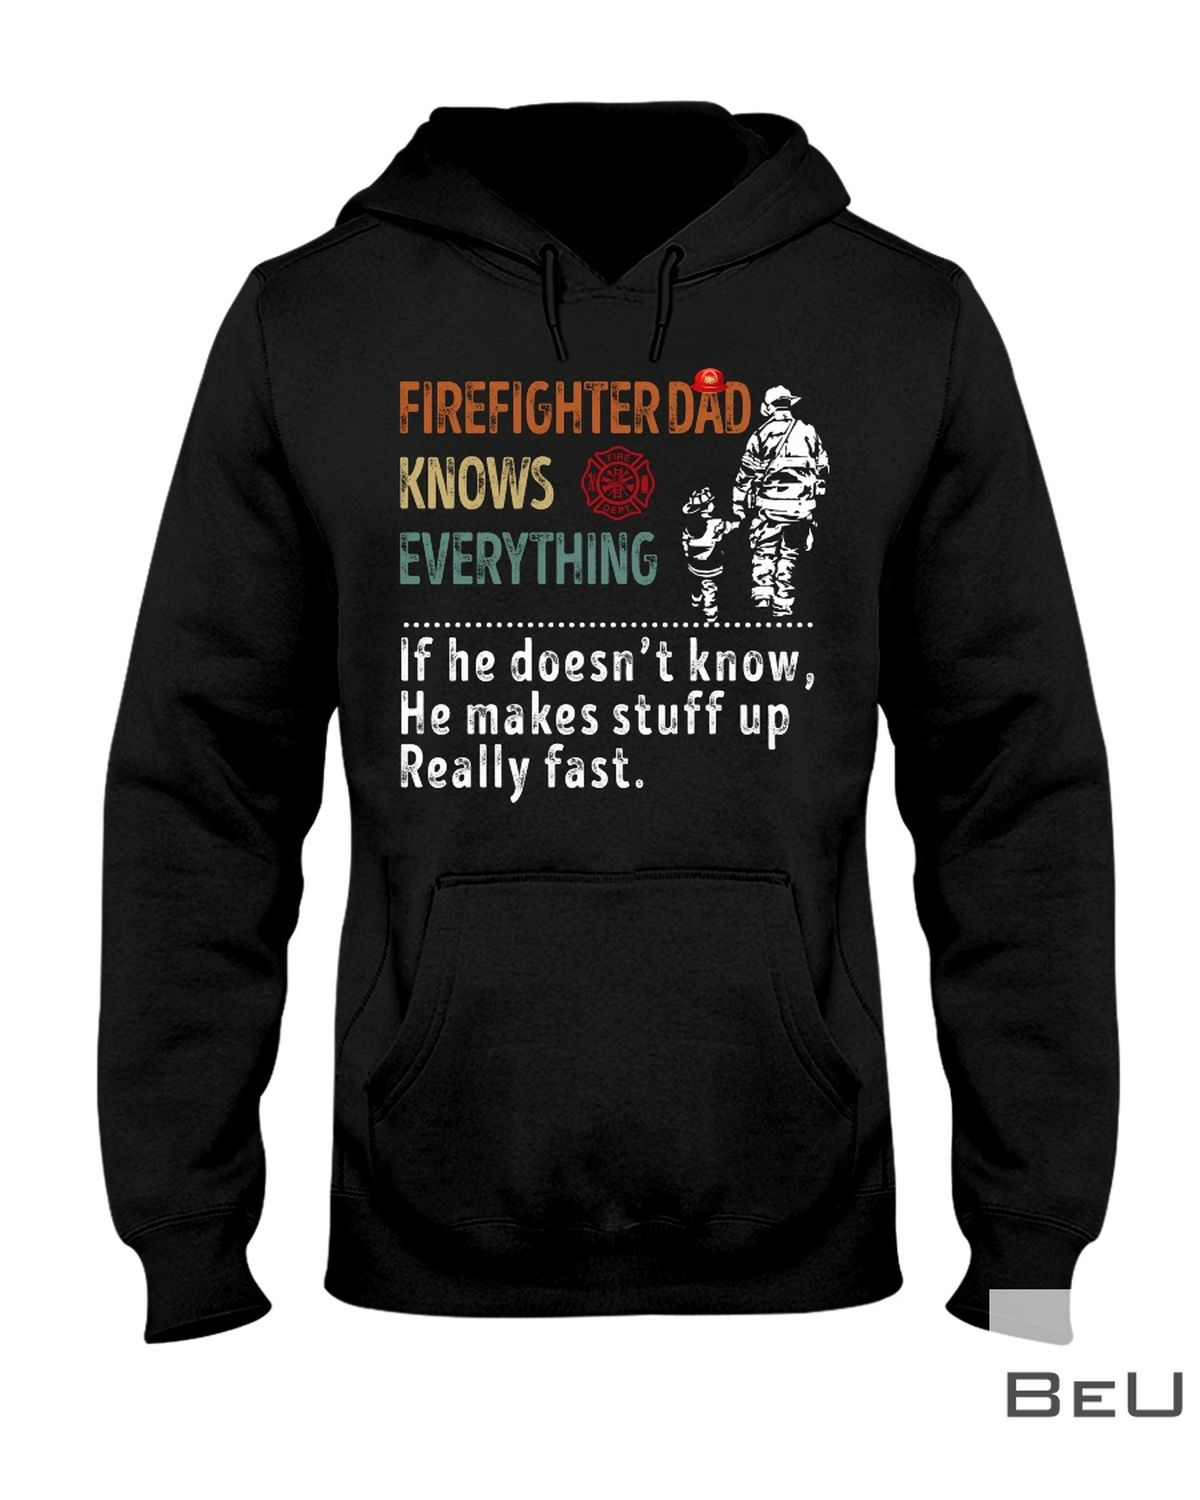 Firefighter Dad Knows Everything If He Doesn't Know He Makes Stuff Up Really Fast Shirtz